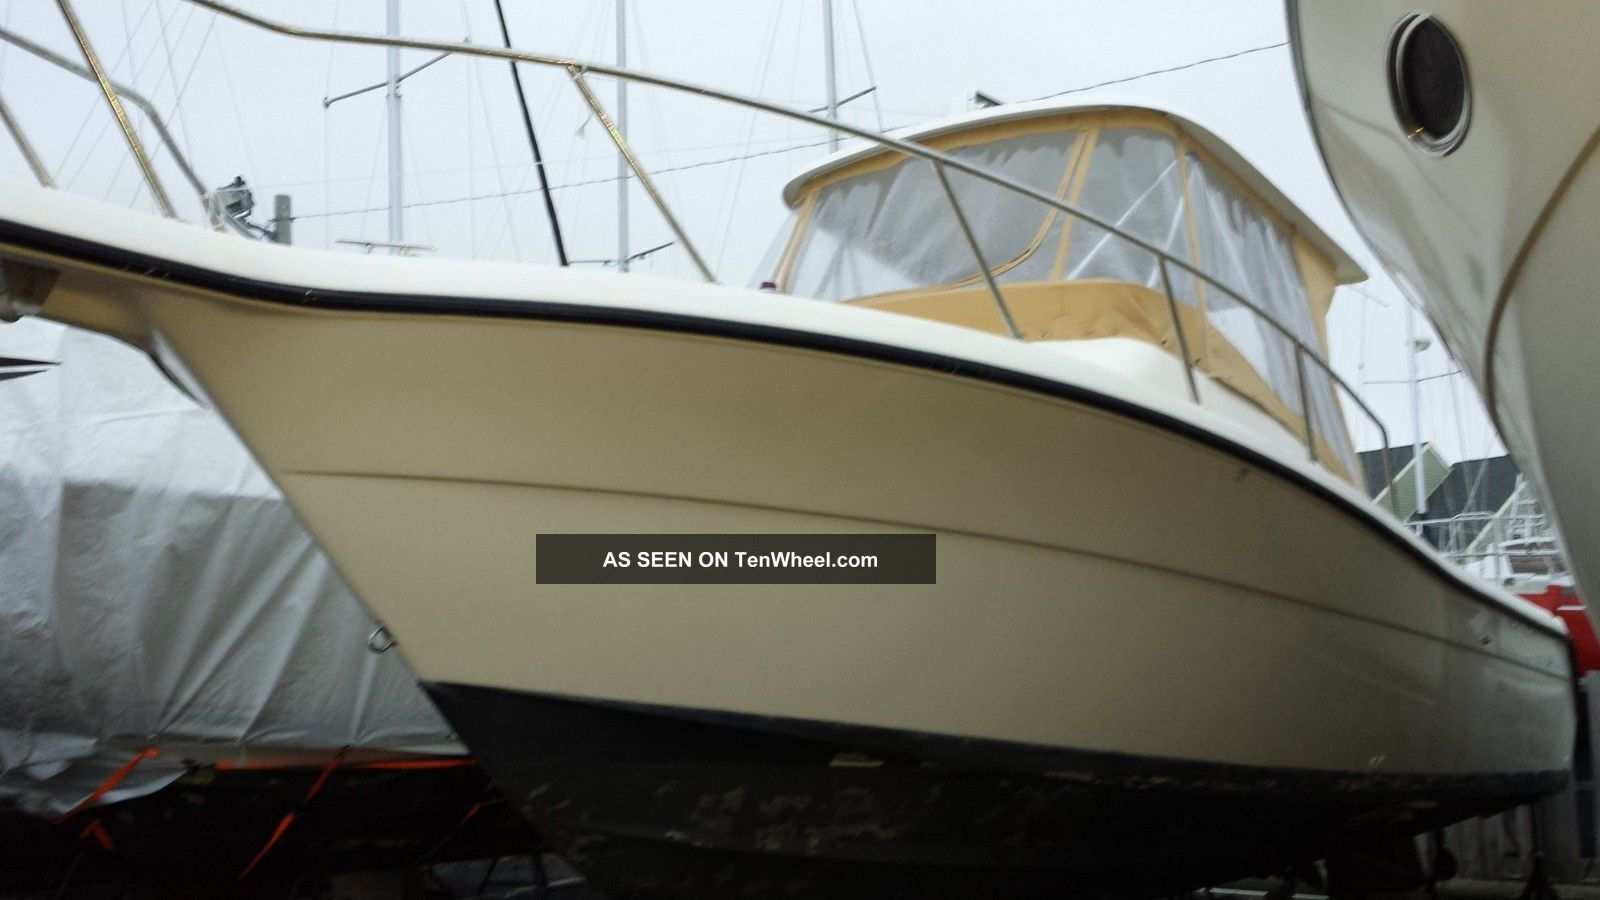 1997 Pursuit 2870 Offshore Offshore Saltwater Fishing photo